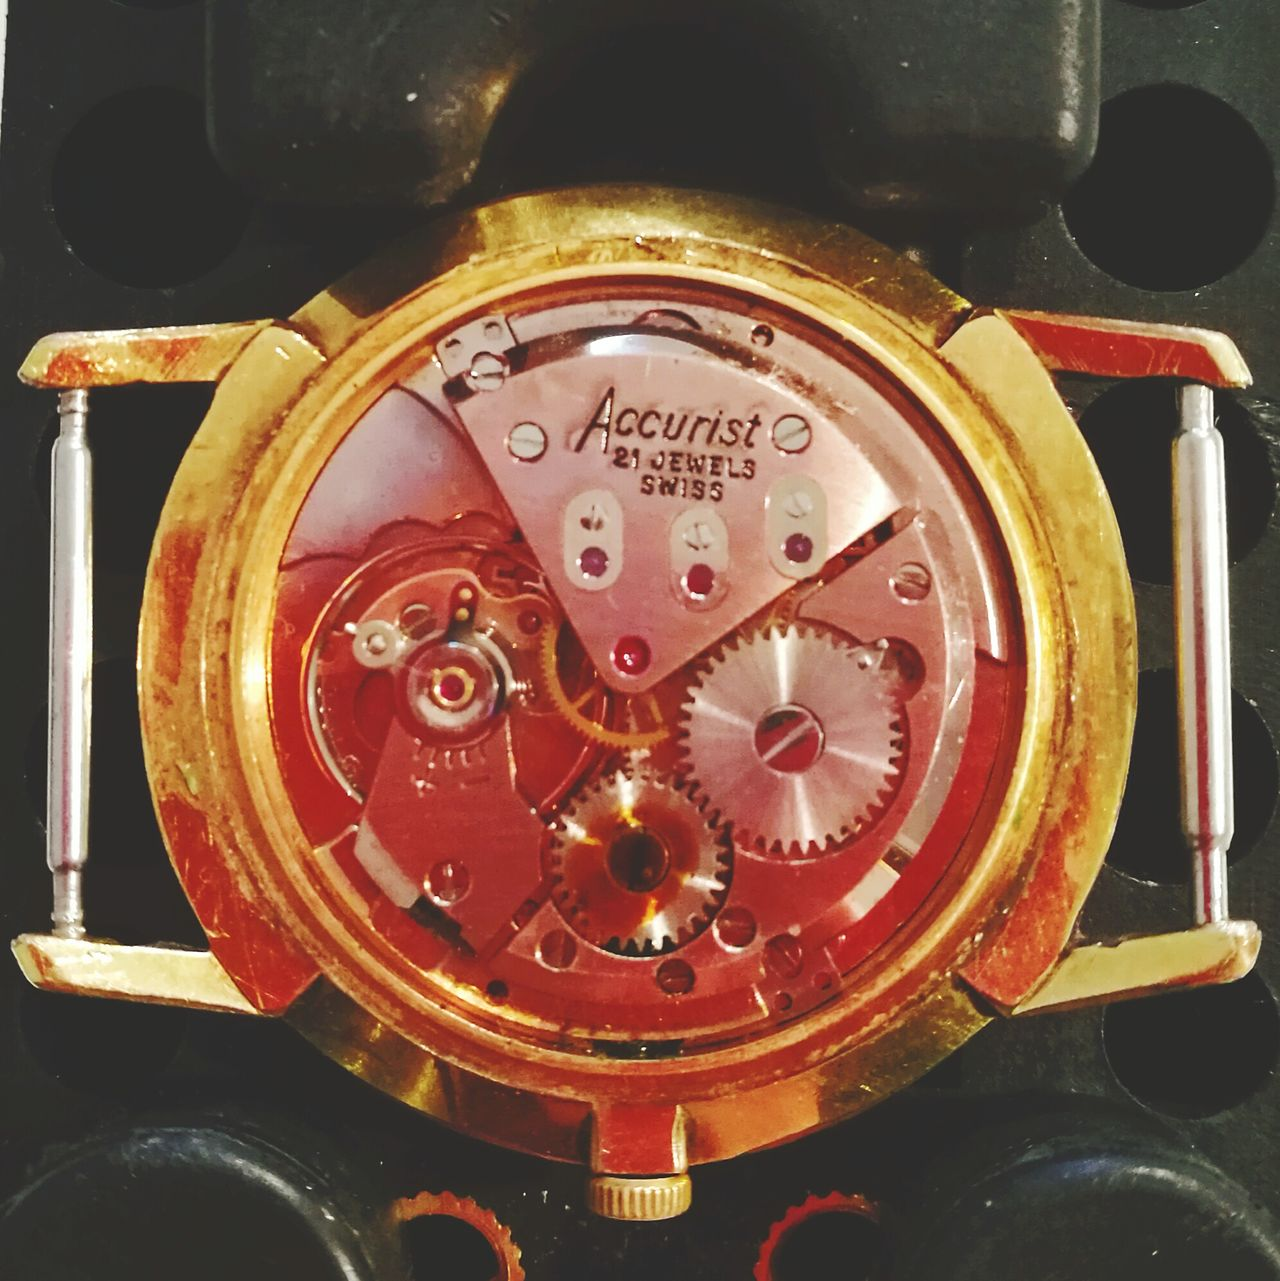 Accurist 1960 21 Jewel Wrist Watch Watch Accurist 21 Jewel 1960 21jewels 1960s Design No People Time Close-up Clock Timer Clock Face Open Back Of Watch Beautiful Movement Gentlemen Fresh On Eyeem  Kingston Upon Hull Machanical Wind Up Movement Lieblingsteil Art Is Everywhere Break The Mold